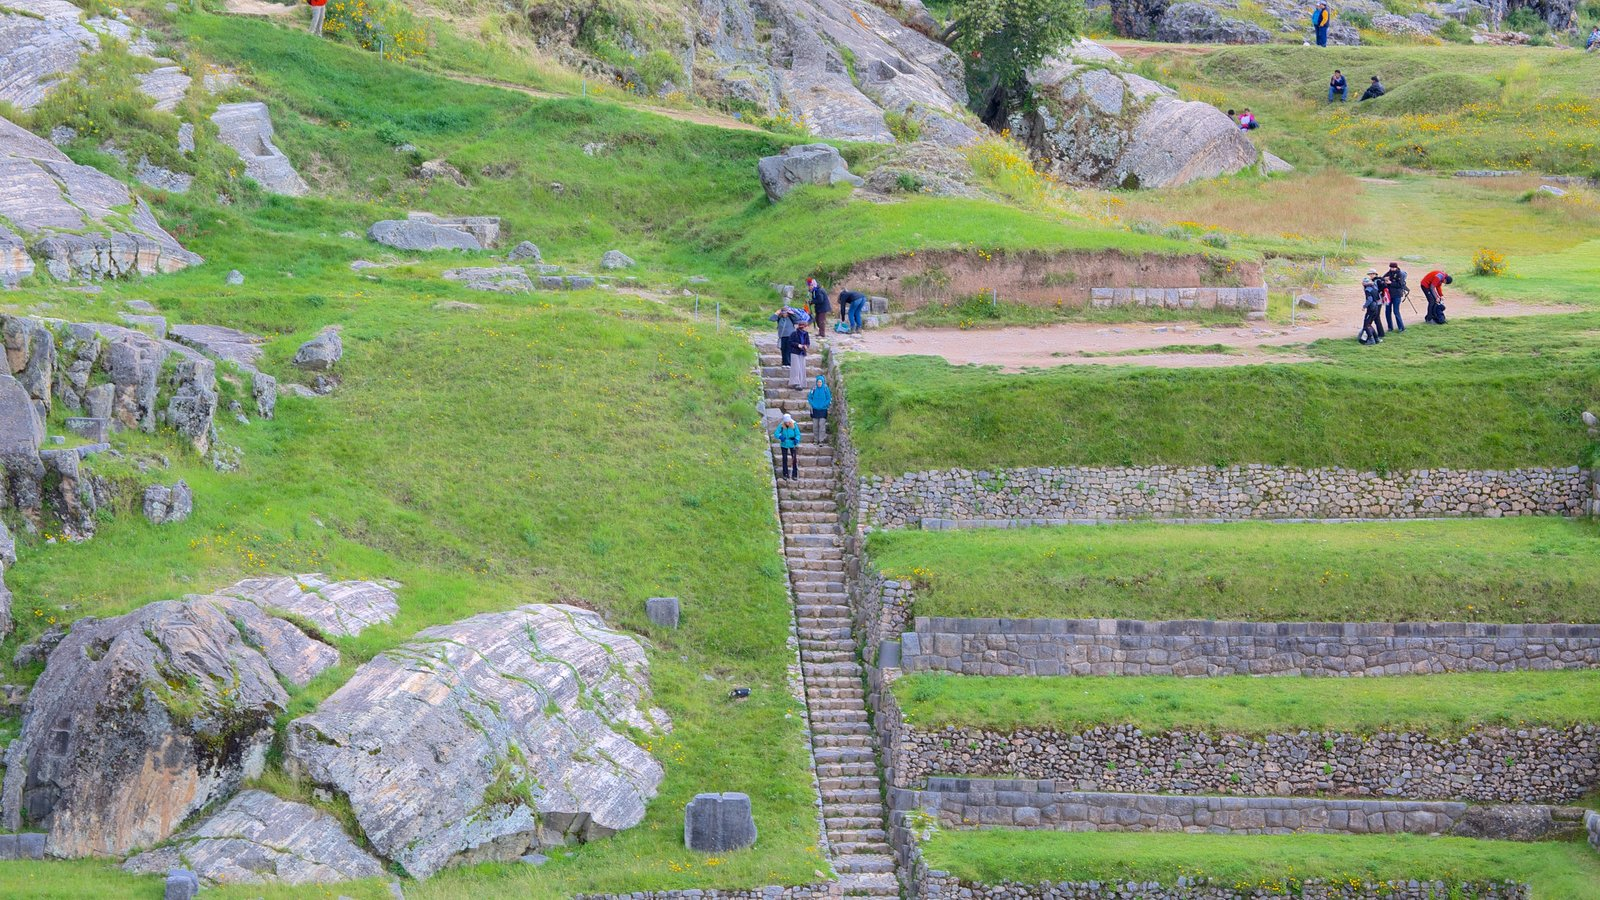 Sacsayhuaman which includes hiking or walking and heritage elements